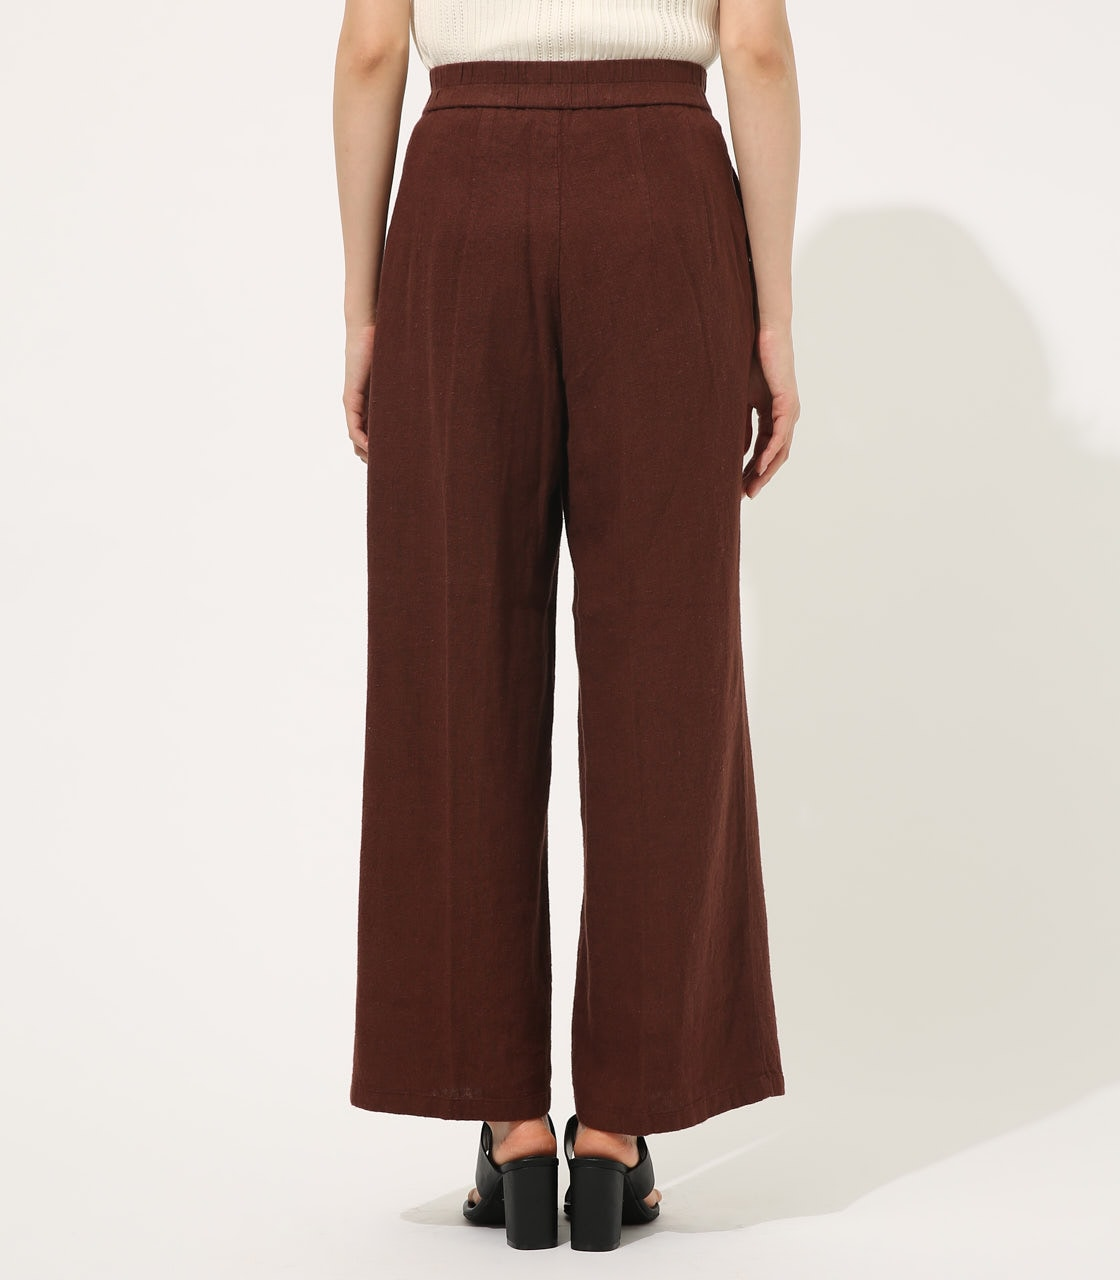 【AZUL BY MOUSSY】COTTON LINEN WIDE PANTS【MOOK50掲載 90131】 詳細画像 BRN 6